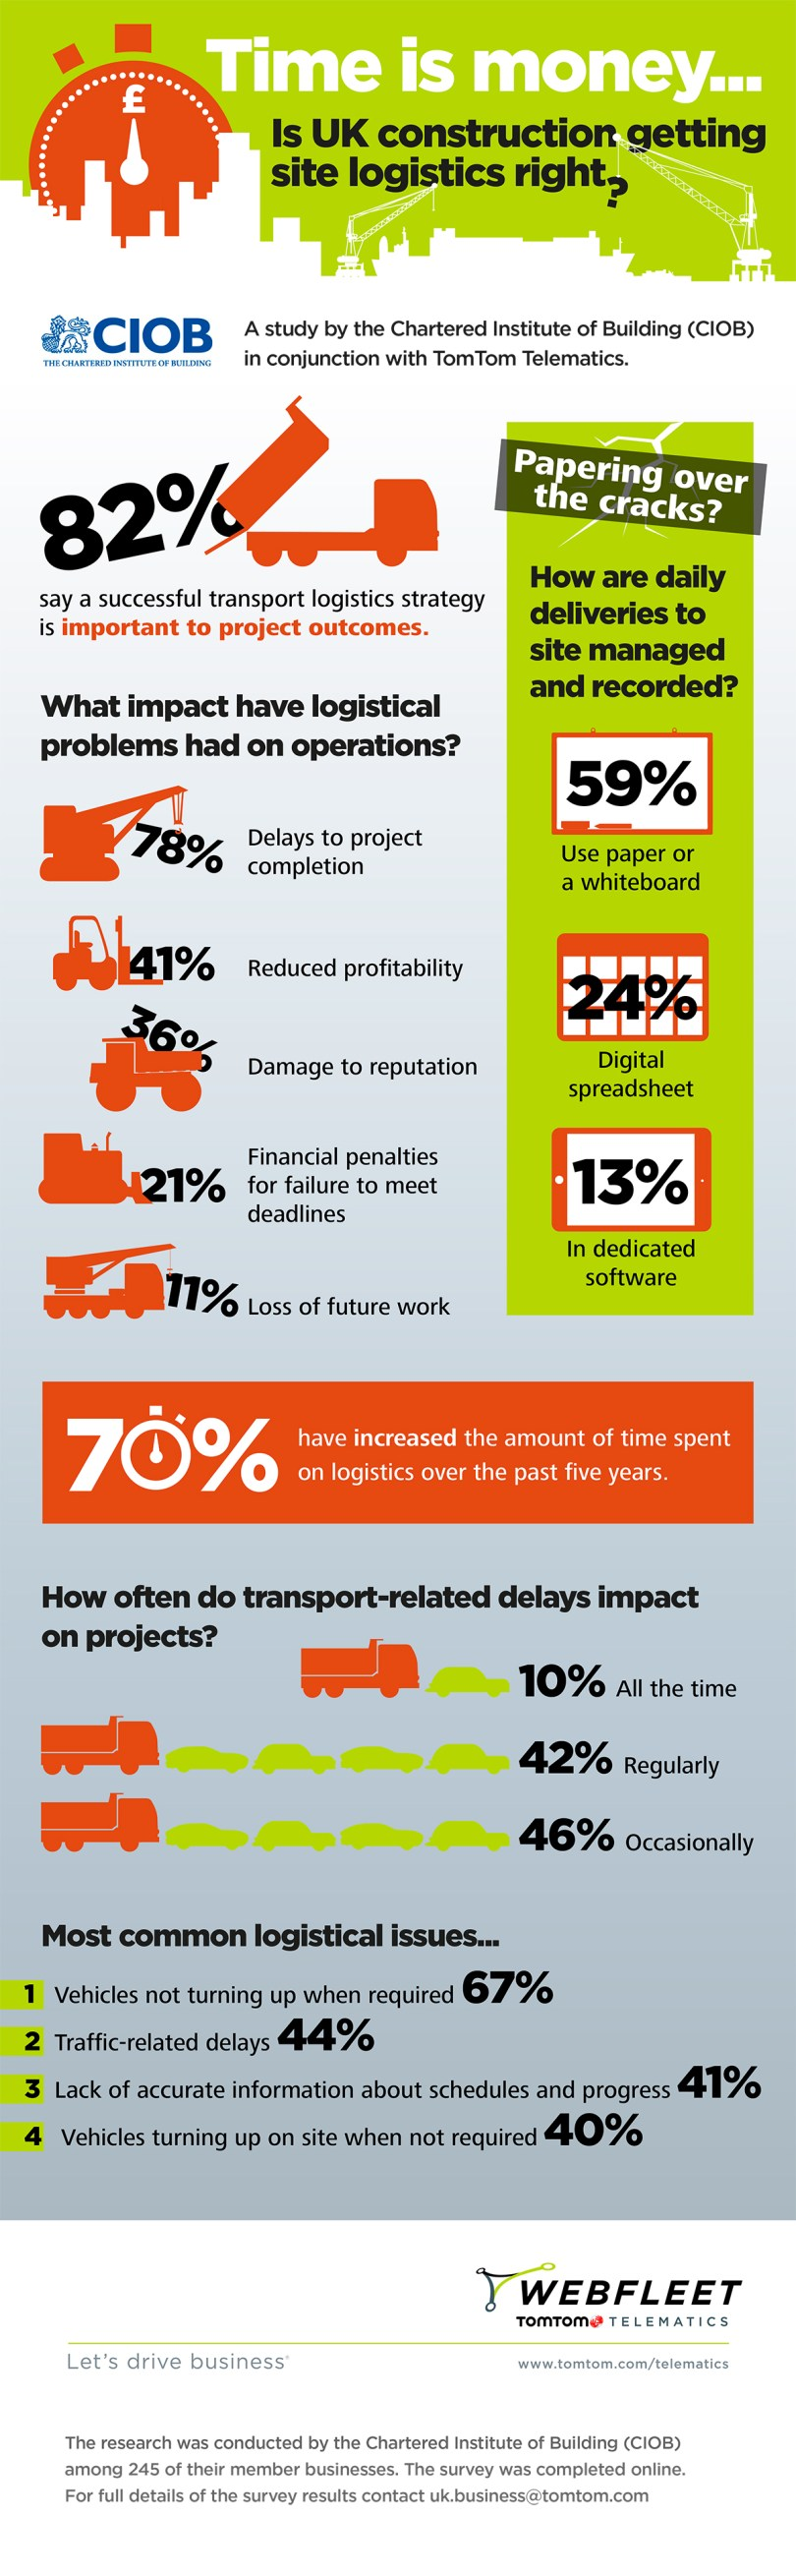 Transport-Related Delays Are Causing Problems For UK Construction Projects